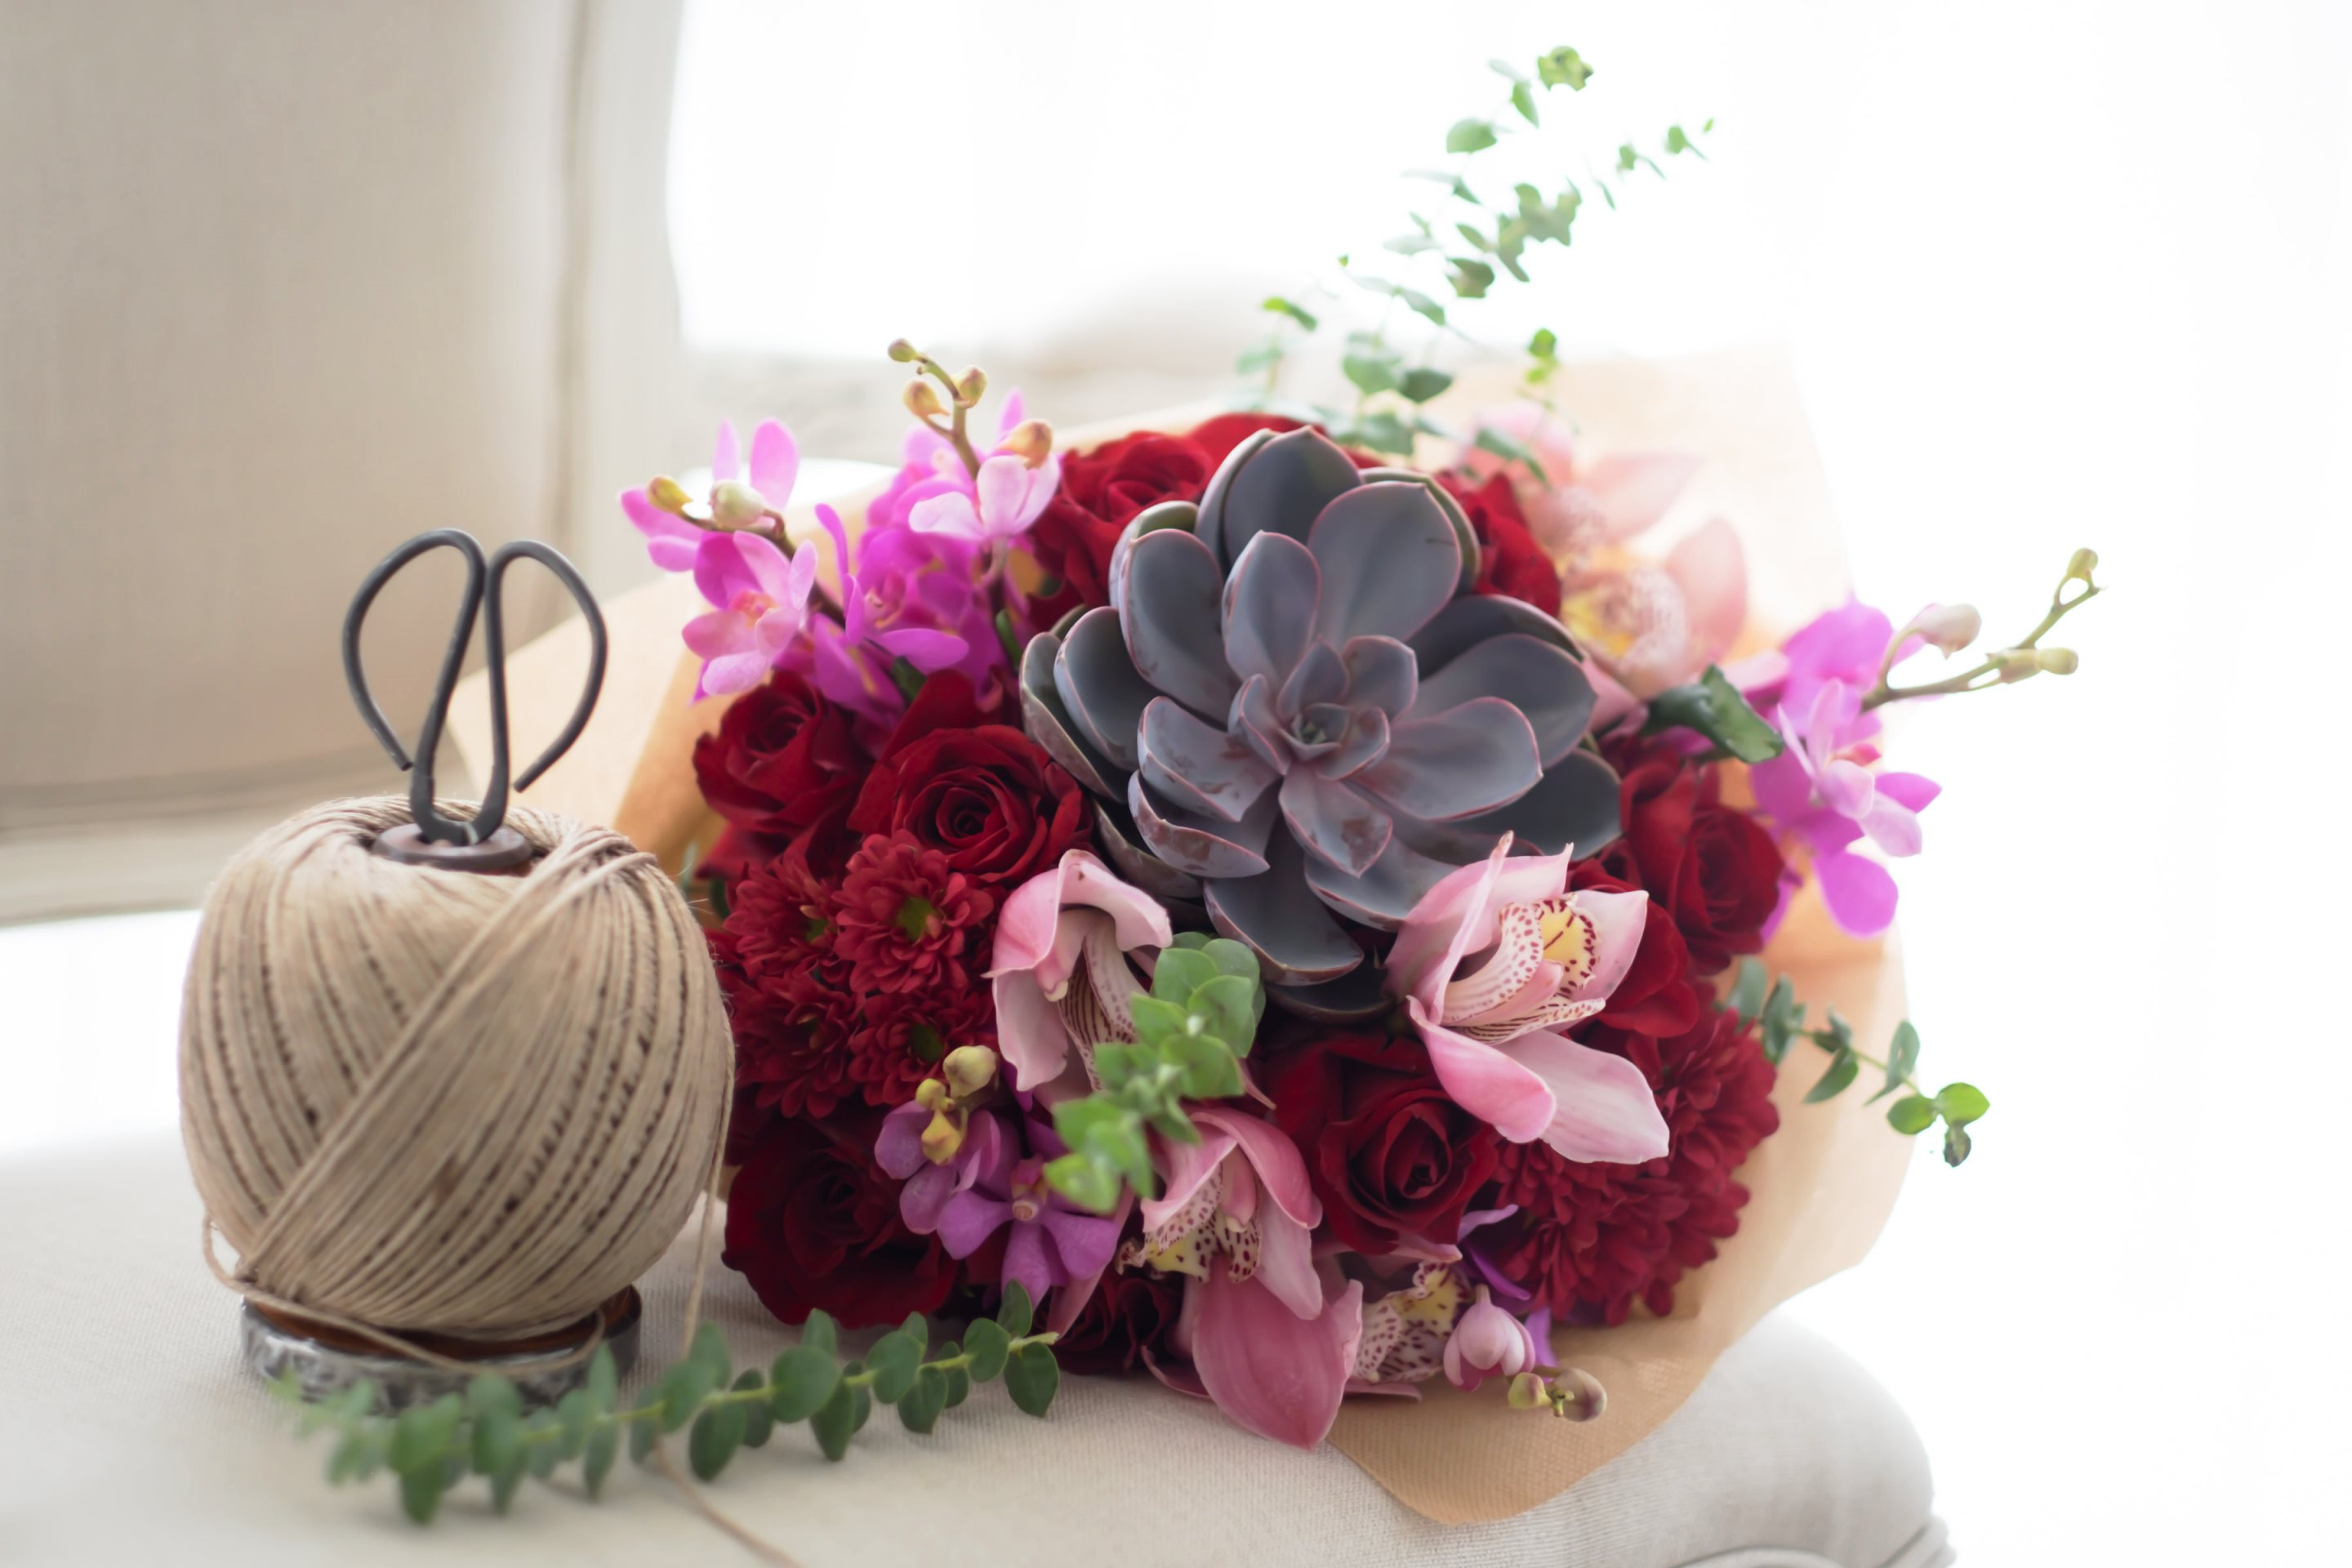 Flower Delivery In Dubai Dubai Flower Delivery Flower Delivery